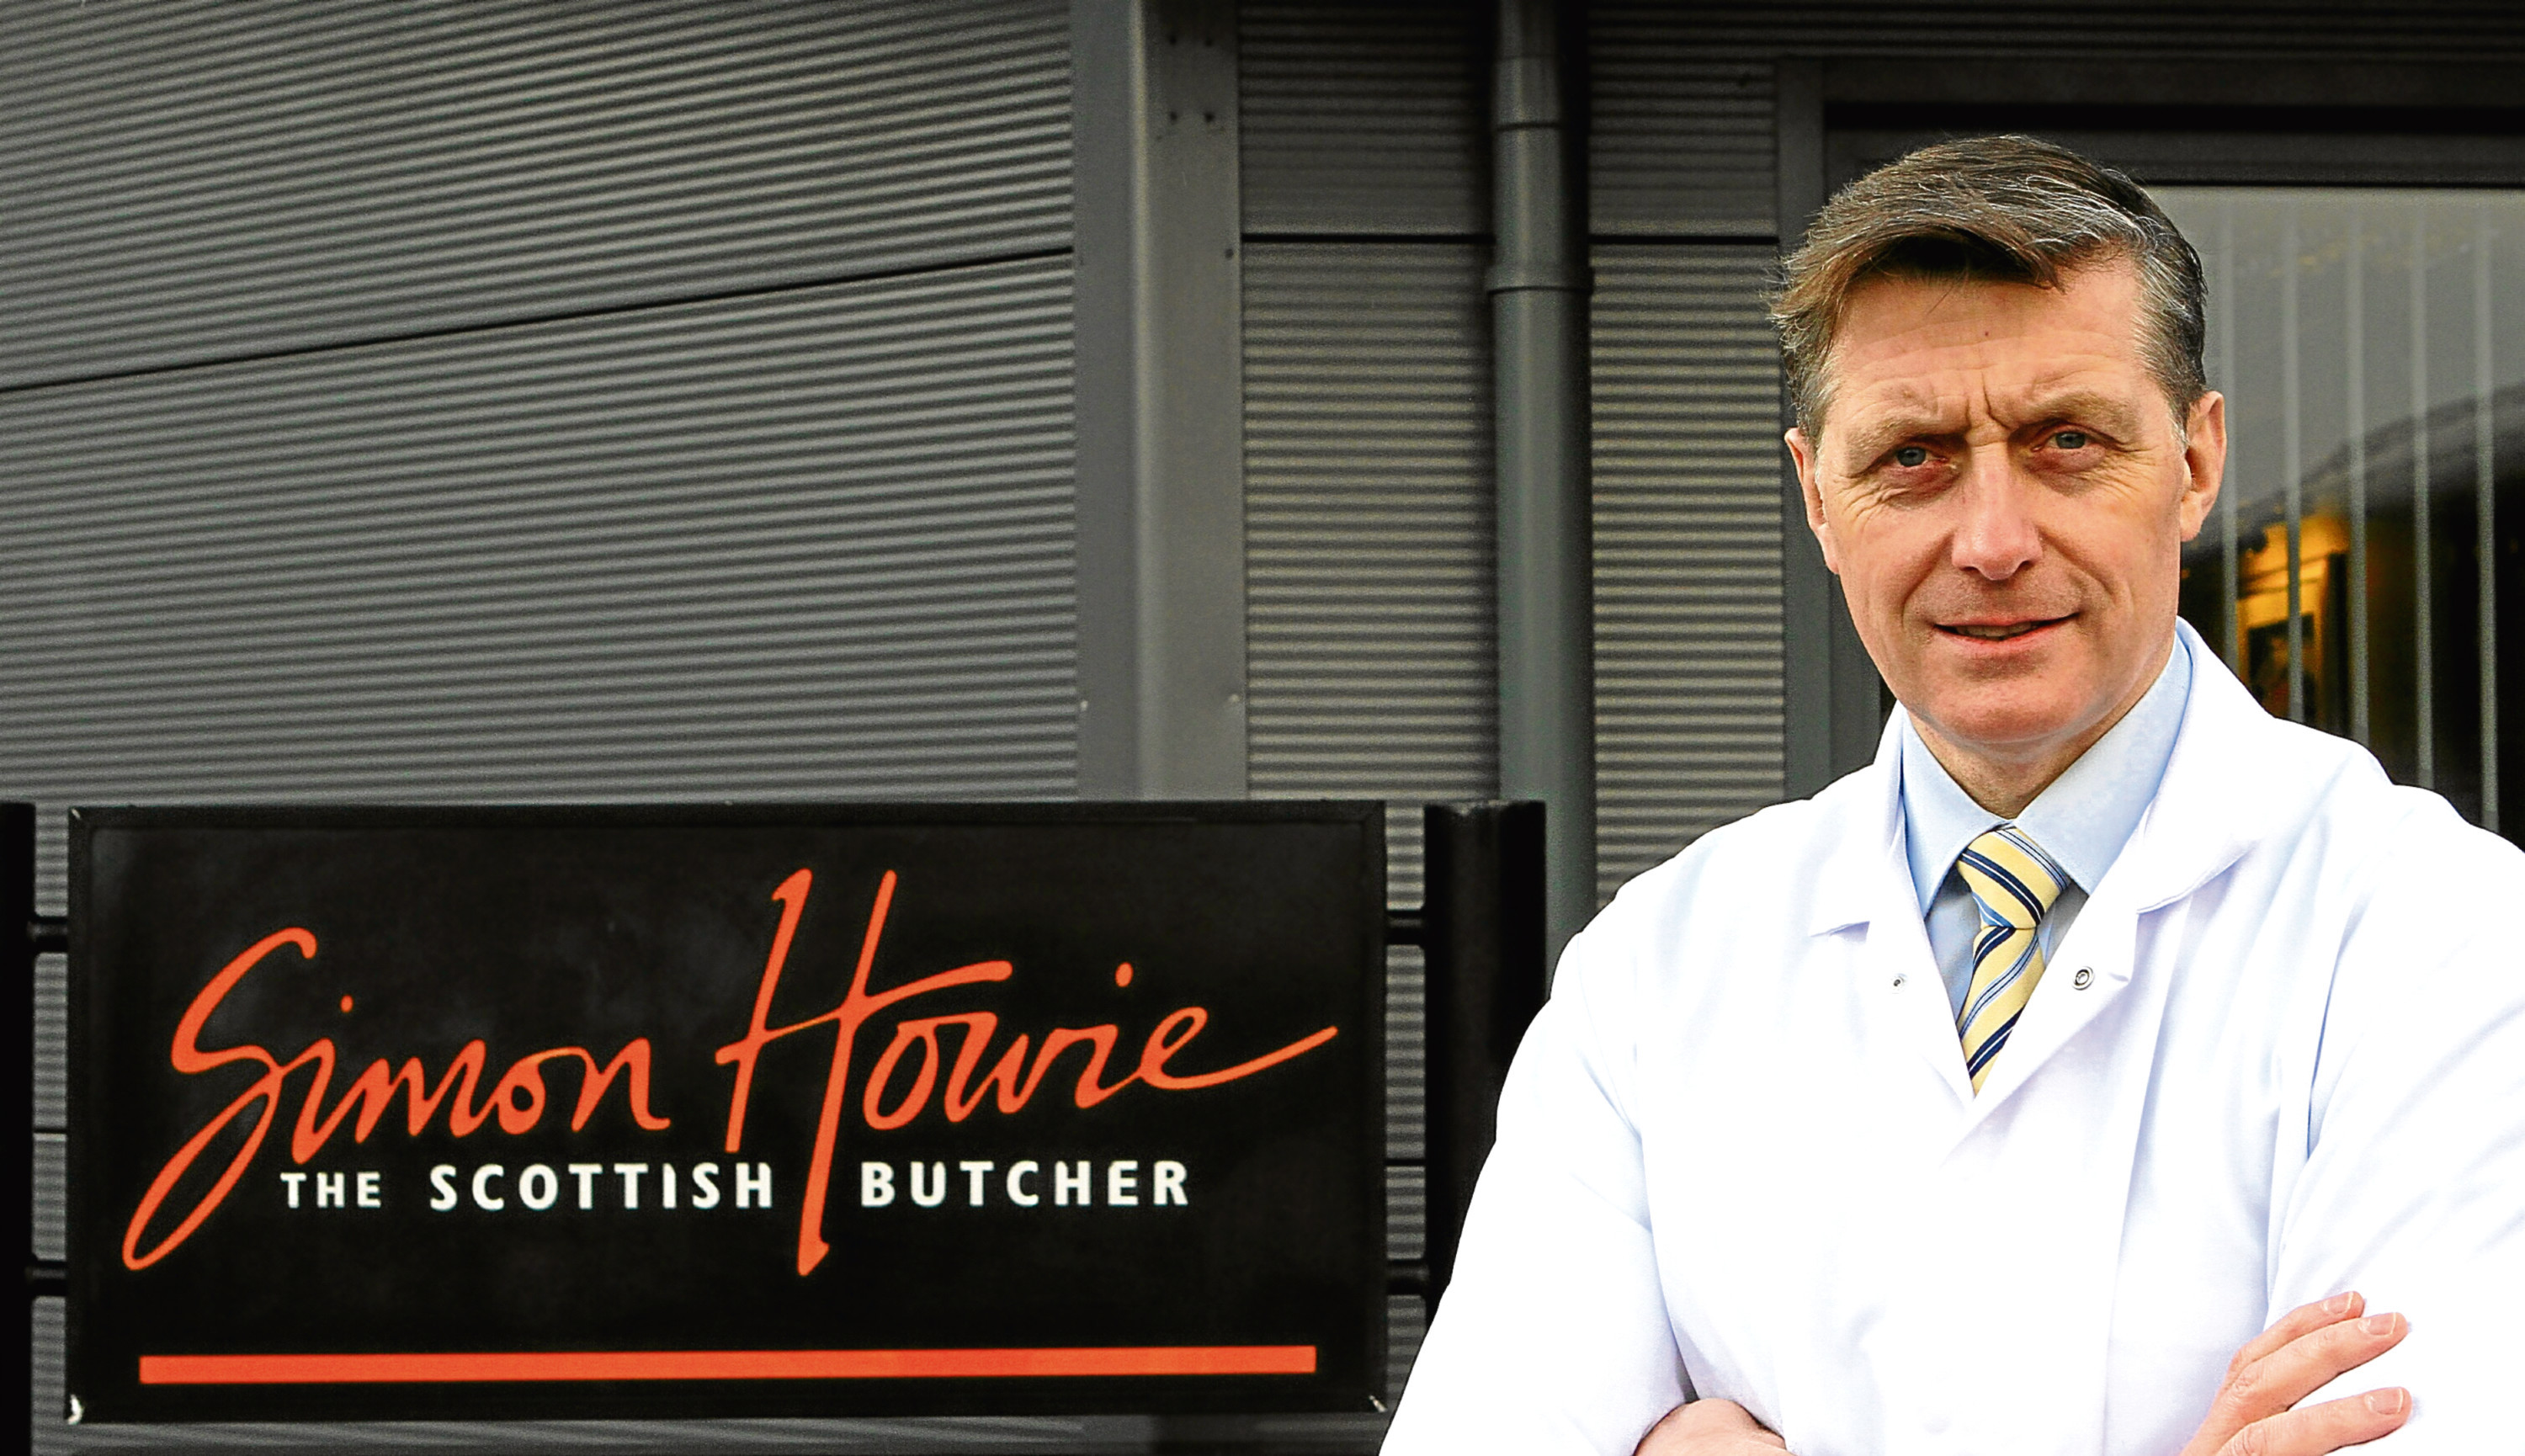 Courier Features - Caroline Lindsay story - Simon Howie and haggis - Dunning.  THIS PICTURE IS FOR CAROLINE LINDSAY MEET YOUR MAKER. Picture shows; Simon Howie, butcher, at his company's headquarters in Dunning today. Monday 9th January 2017.